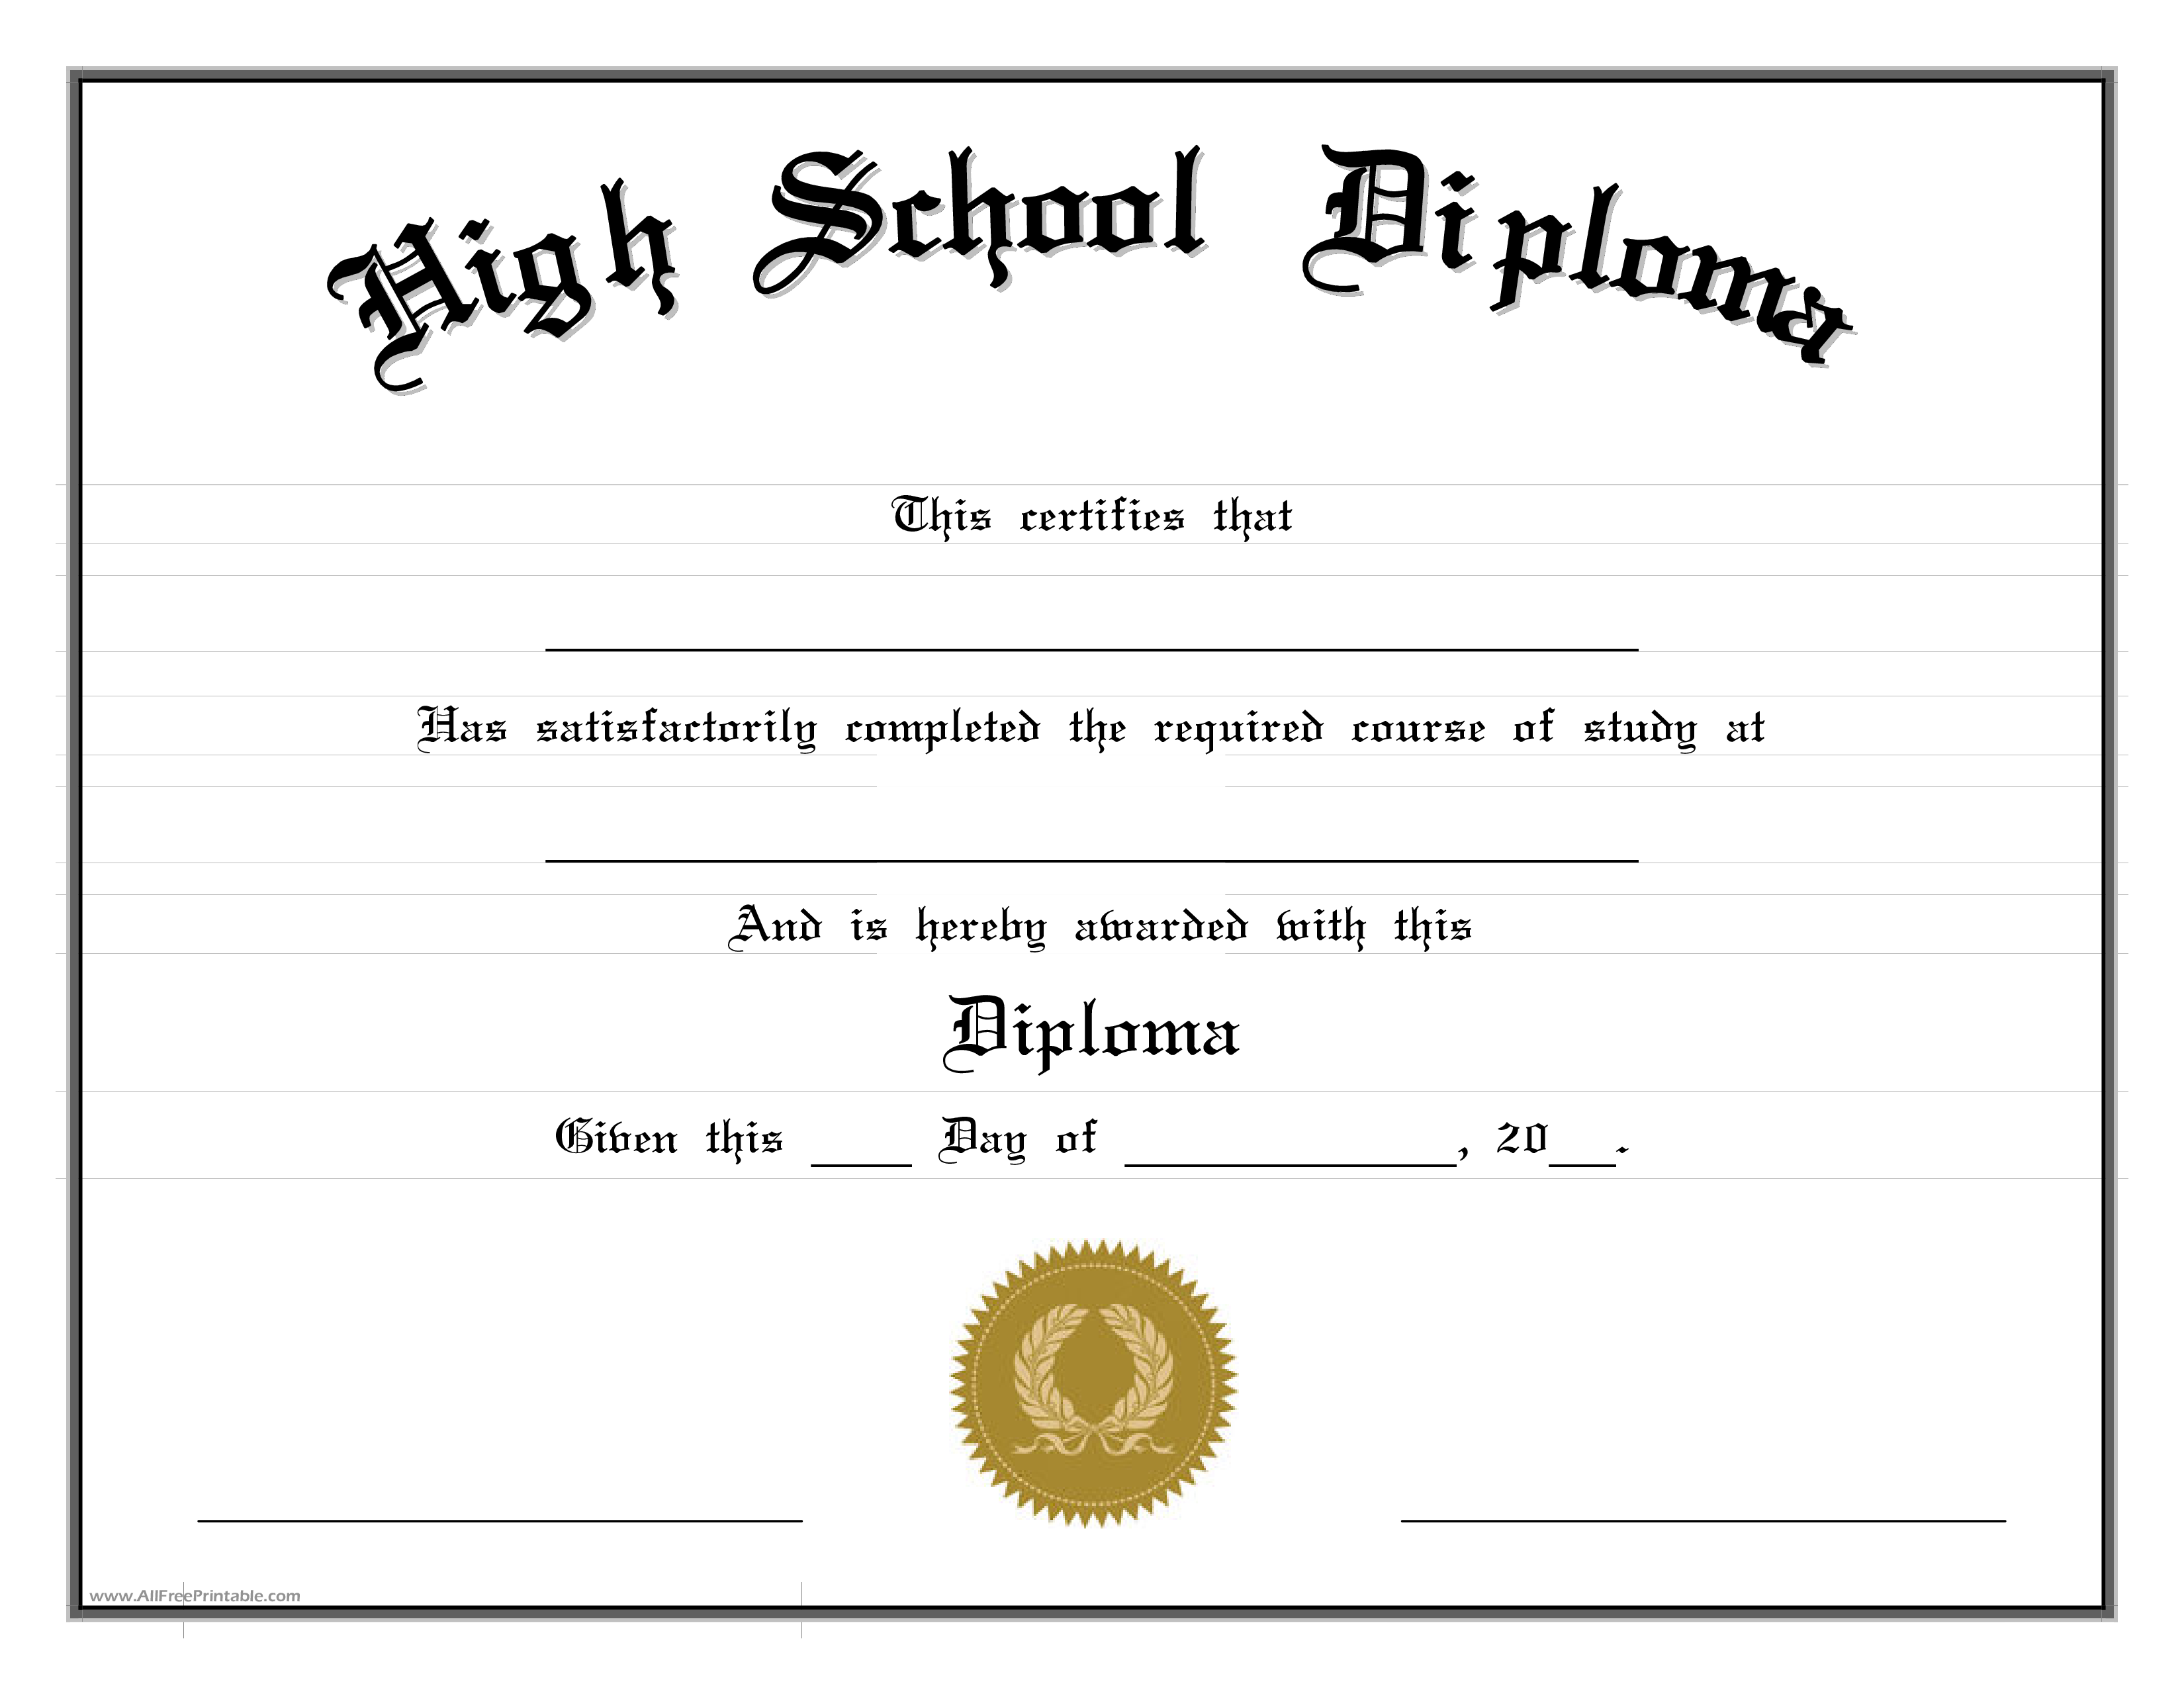 Diploma Template | High School Diploma Edit Cert Highs 2 Pdf Easy To Download And